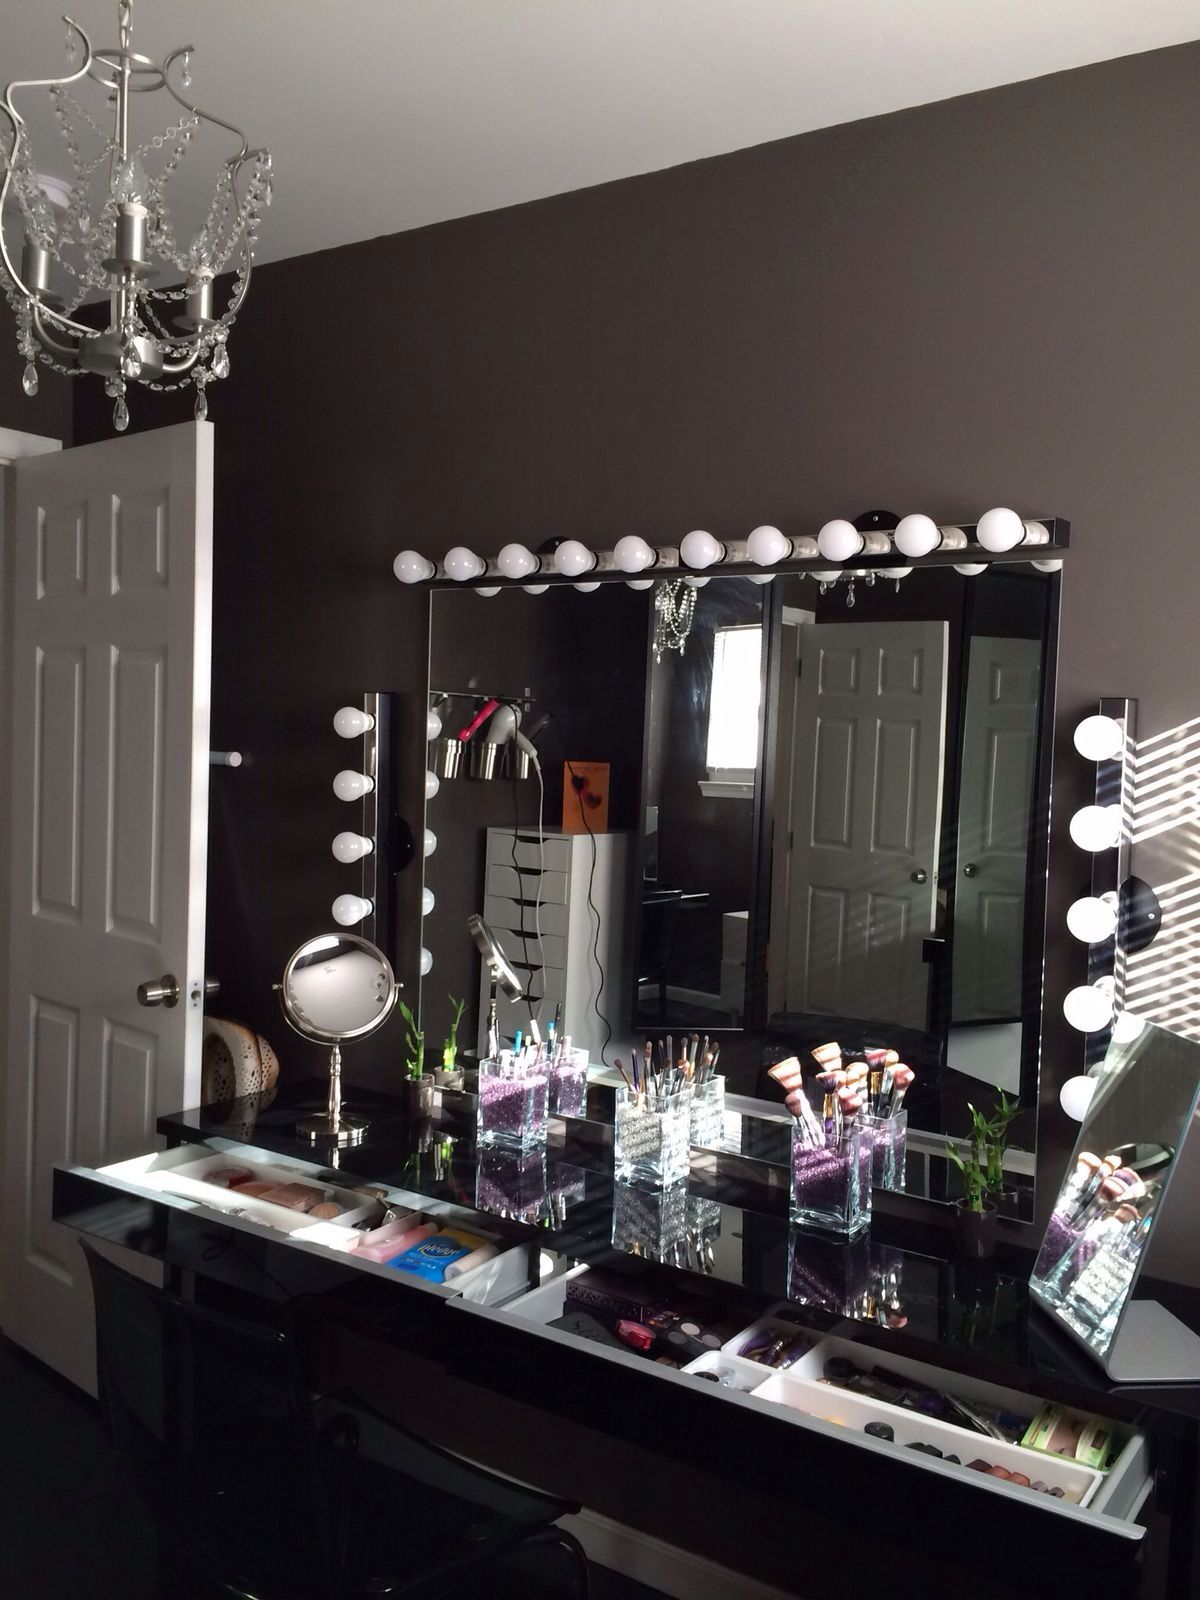 DOWNLOAD The Beauty Room LOOK BOOK For GLAM Home Décor And ...